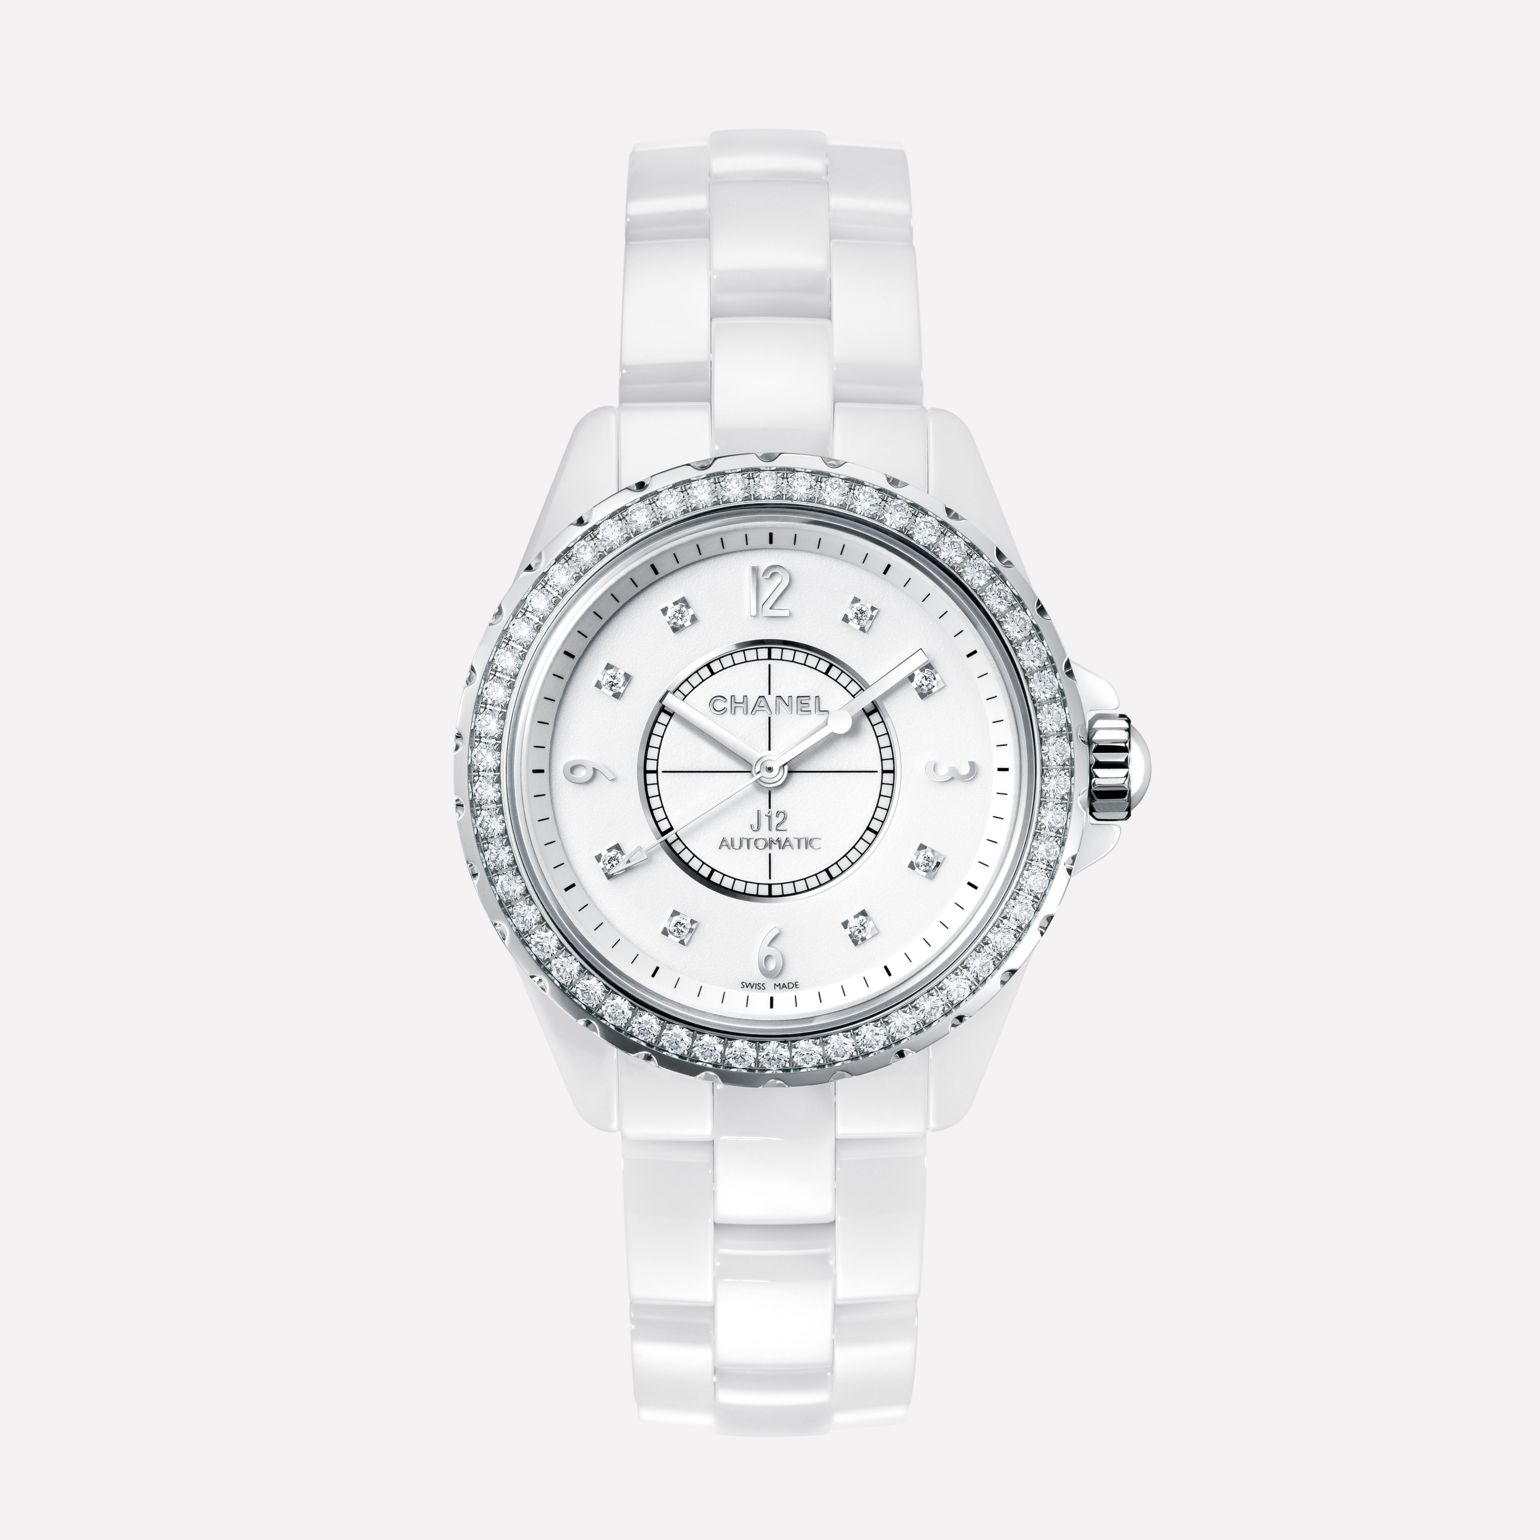 J12 White highly resistant ceramic and steel, brilliant-cut diamond bezel and indicators